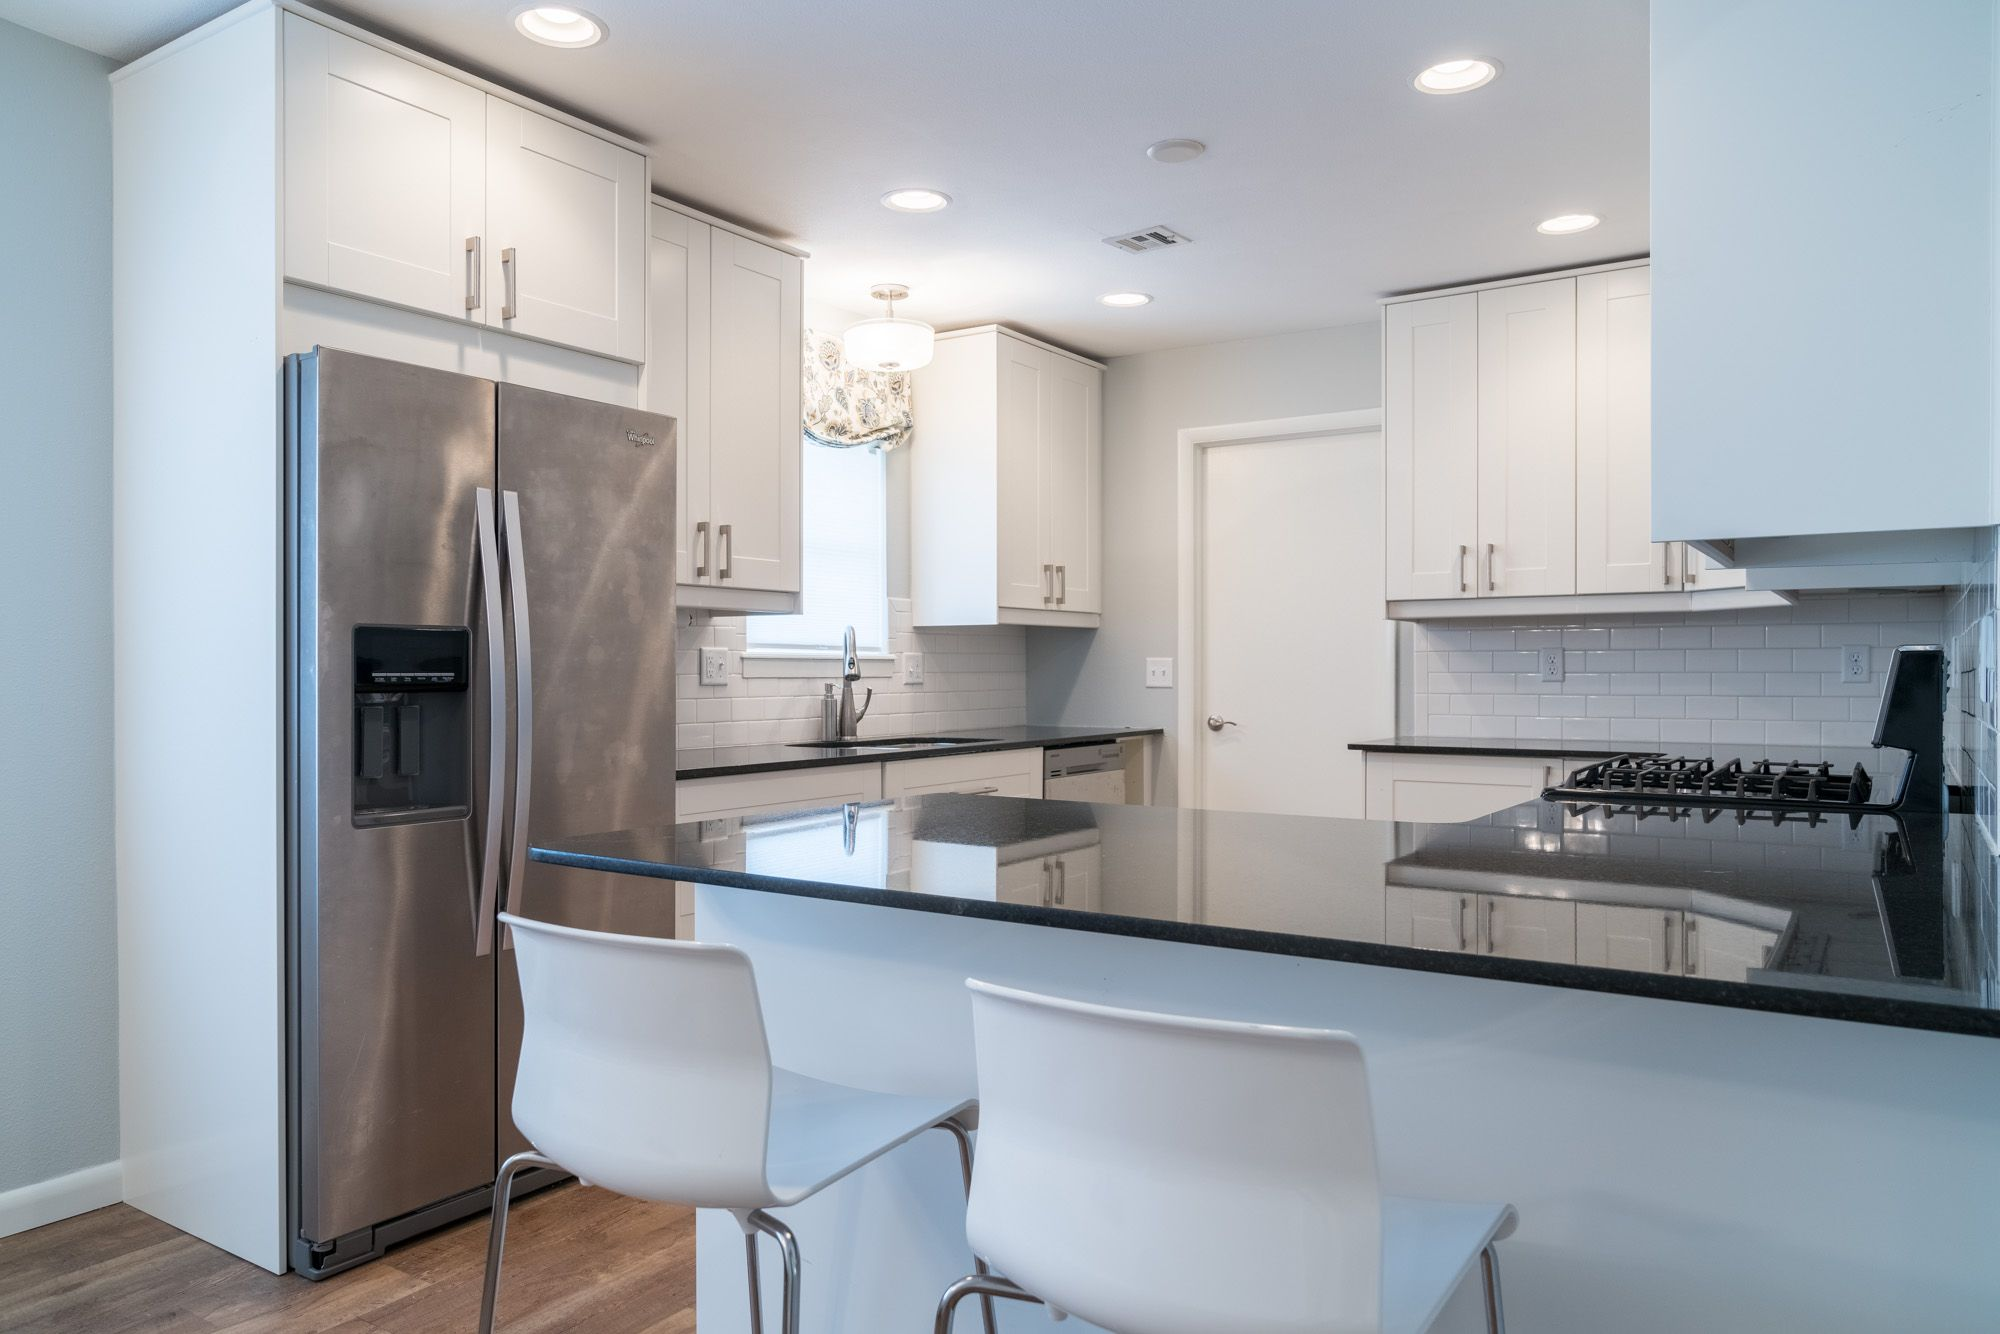 How an IKEA Kitchen Saved this Rental Property in Arkansas ...